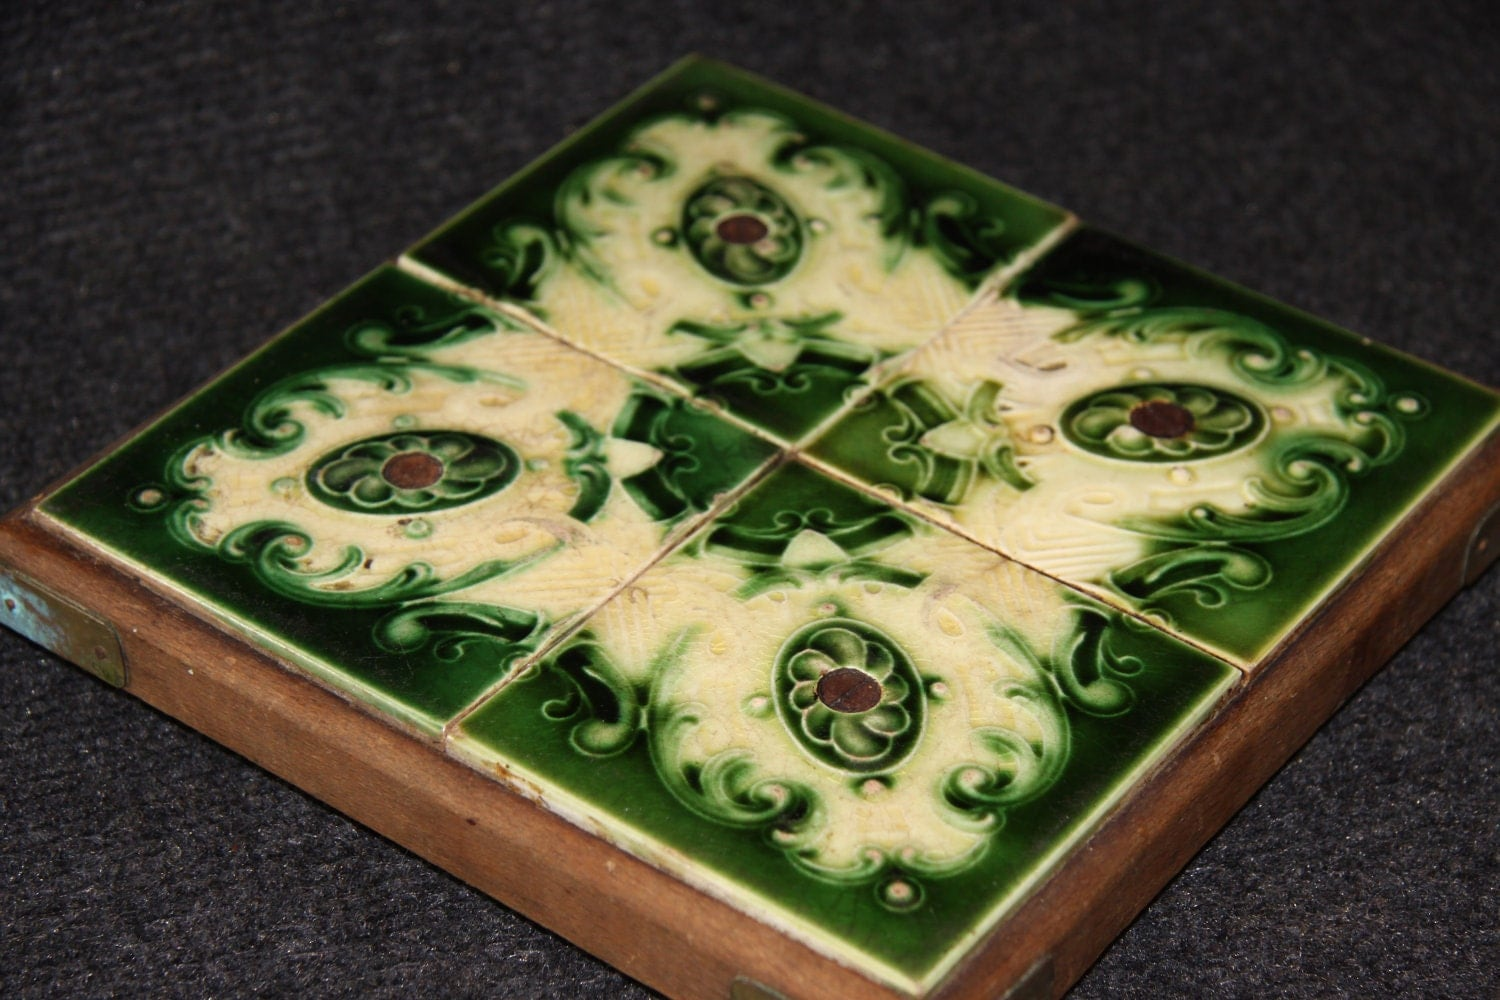 Making a trivet from kitchen tile or the ultimate in simplicity if you have a larger tile dailygadgetfo Choice Image